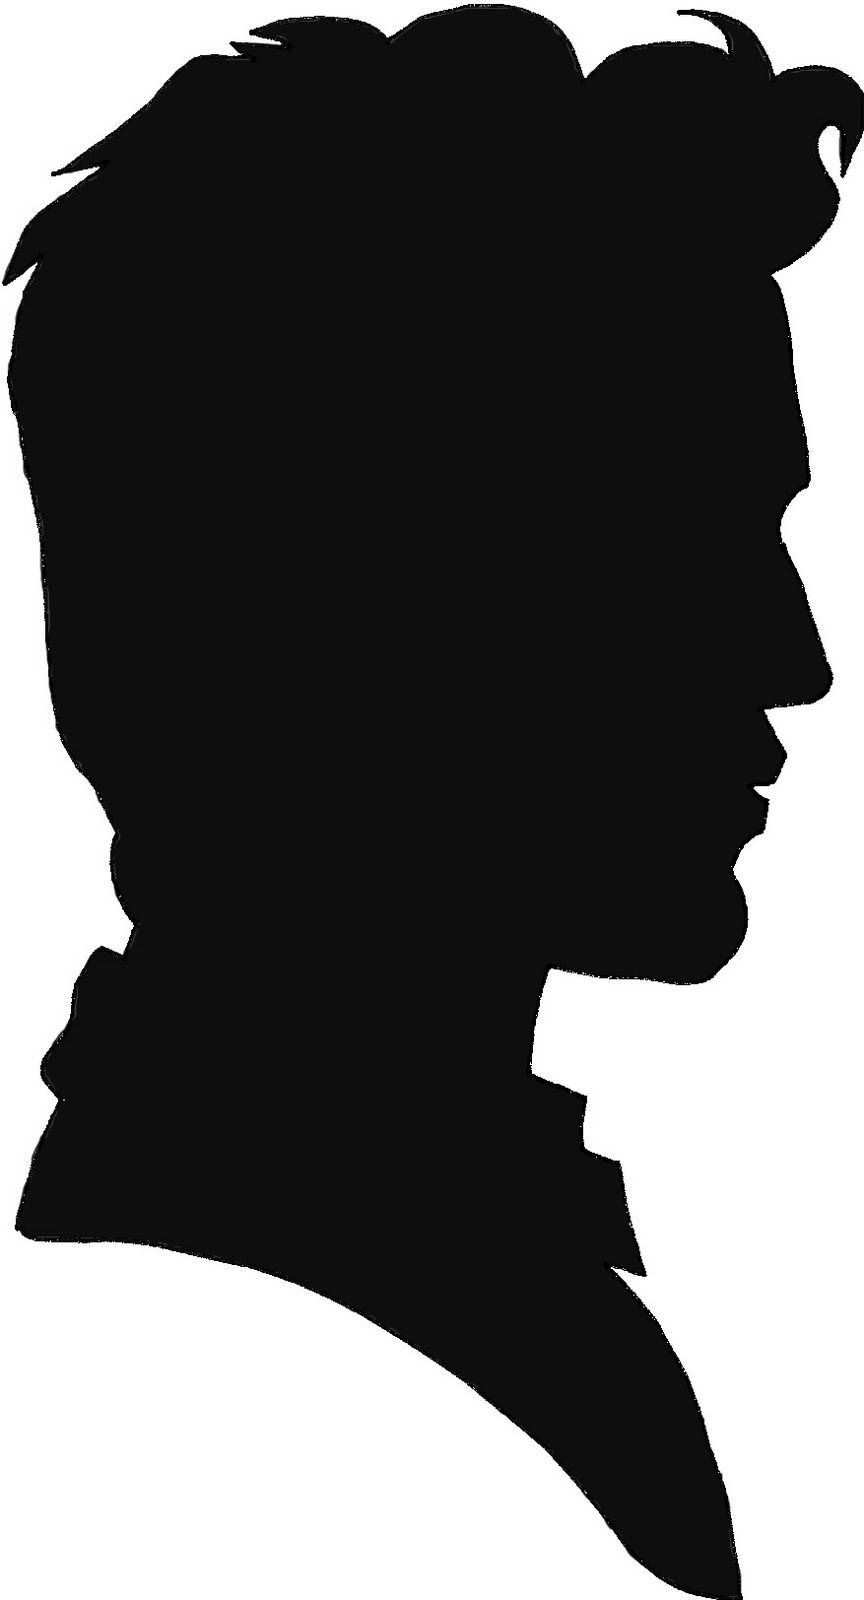 Woman Hair Wind Silhouette Images, Stock Photos & Vectors ...  Face Profile Silhouette Blowing